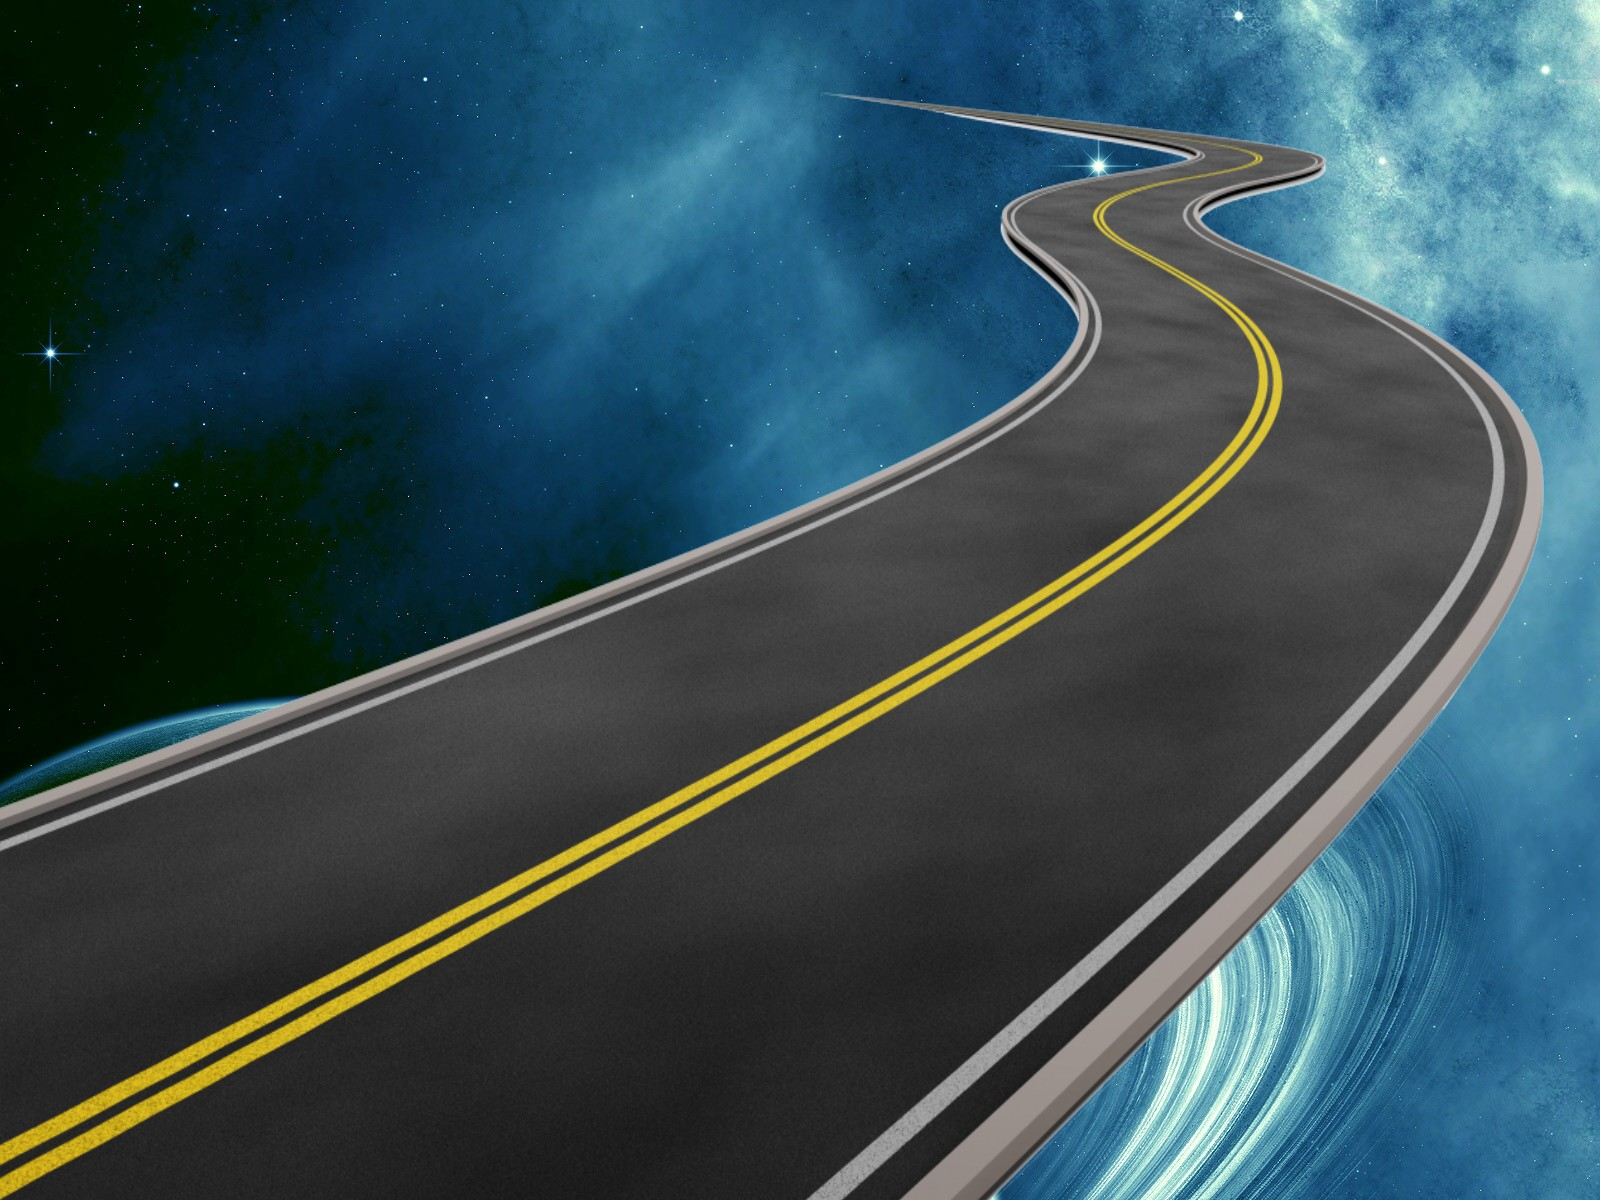 Winding Road PSD by manoluv Winding Road PSD by manoluv - Winding Road PNG HD